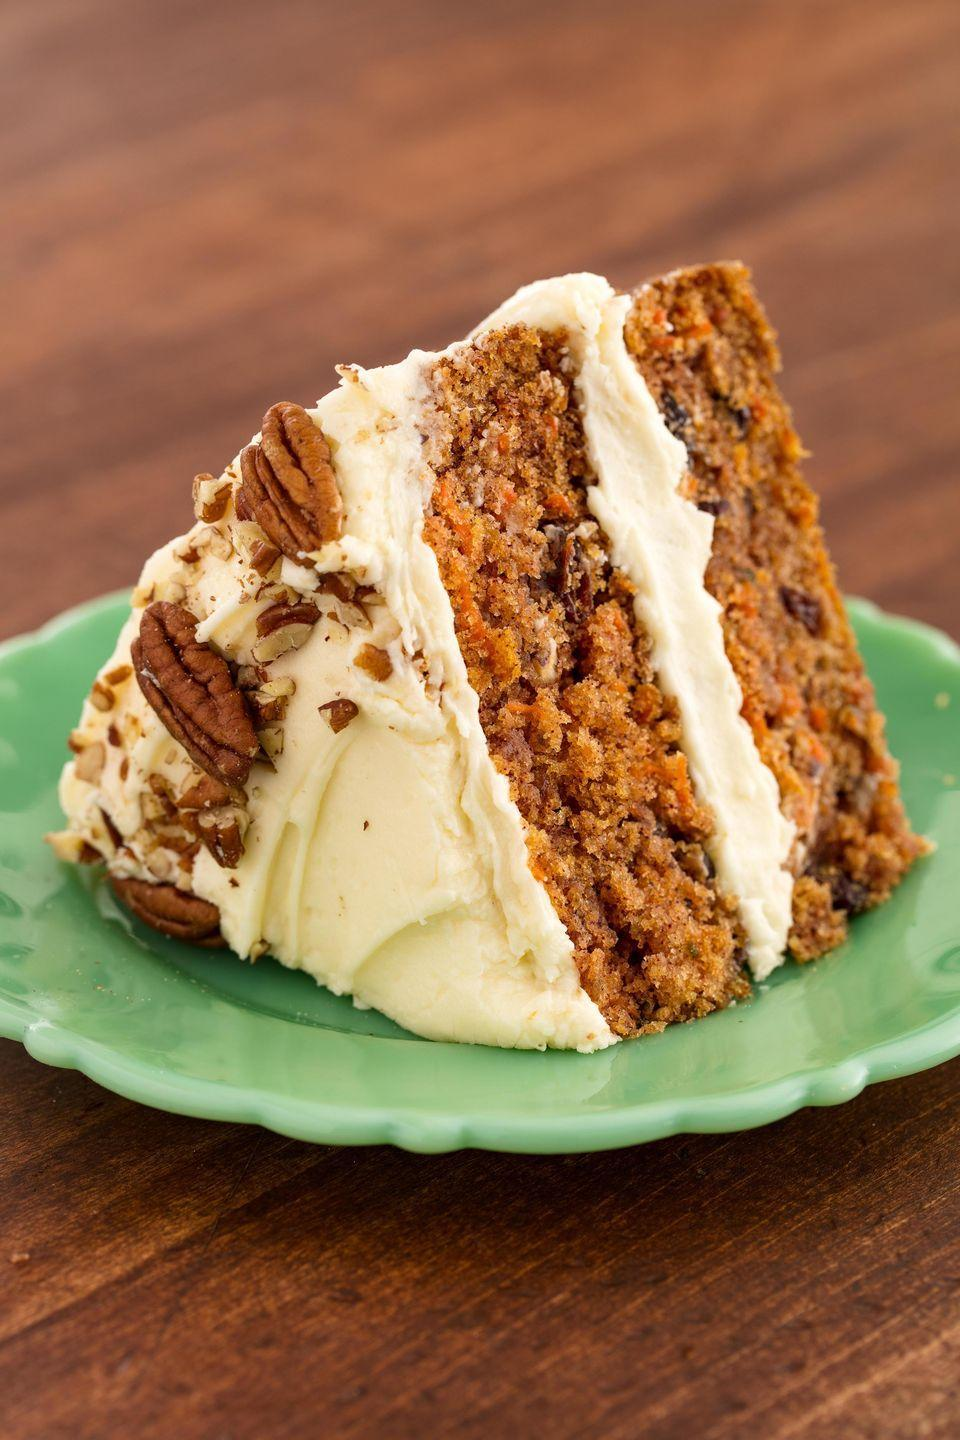 """<p>Cream cheese frosting is the best frosting.</p><p>Get the recipe from <a href=""""https://www.delish.com/cooking/recipe-ideas/recipes/a58283/best-carrot-cake-recipe/"""" rel=""""nofollow noopener"""" target=""""_blank"""" data-ylk=""""slk:Delish"""" class=""""link rapid-noclick-resp"""">Delish</a>.</p>"""